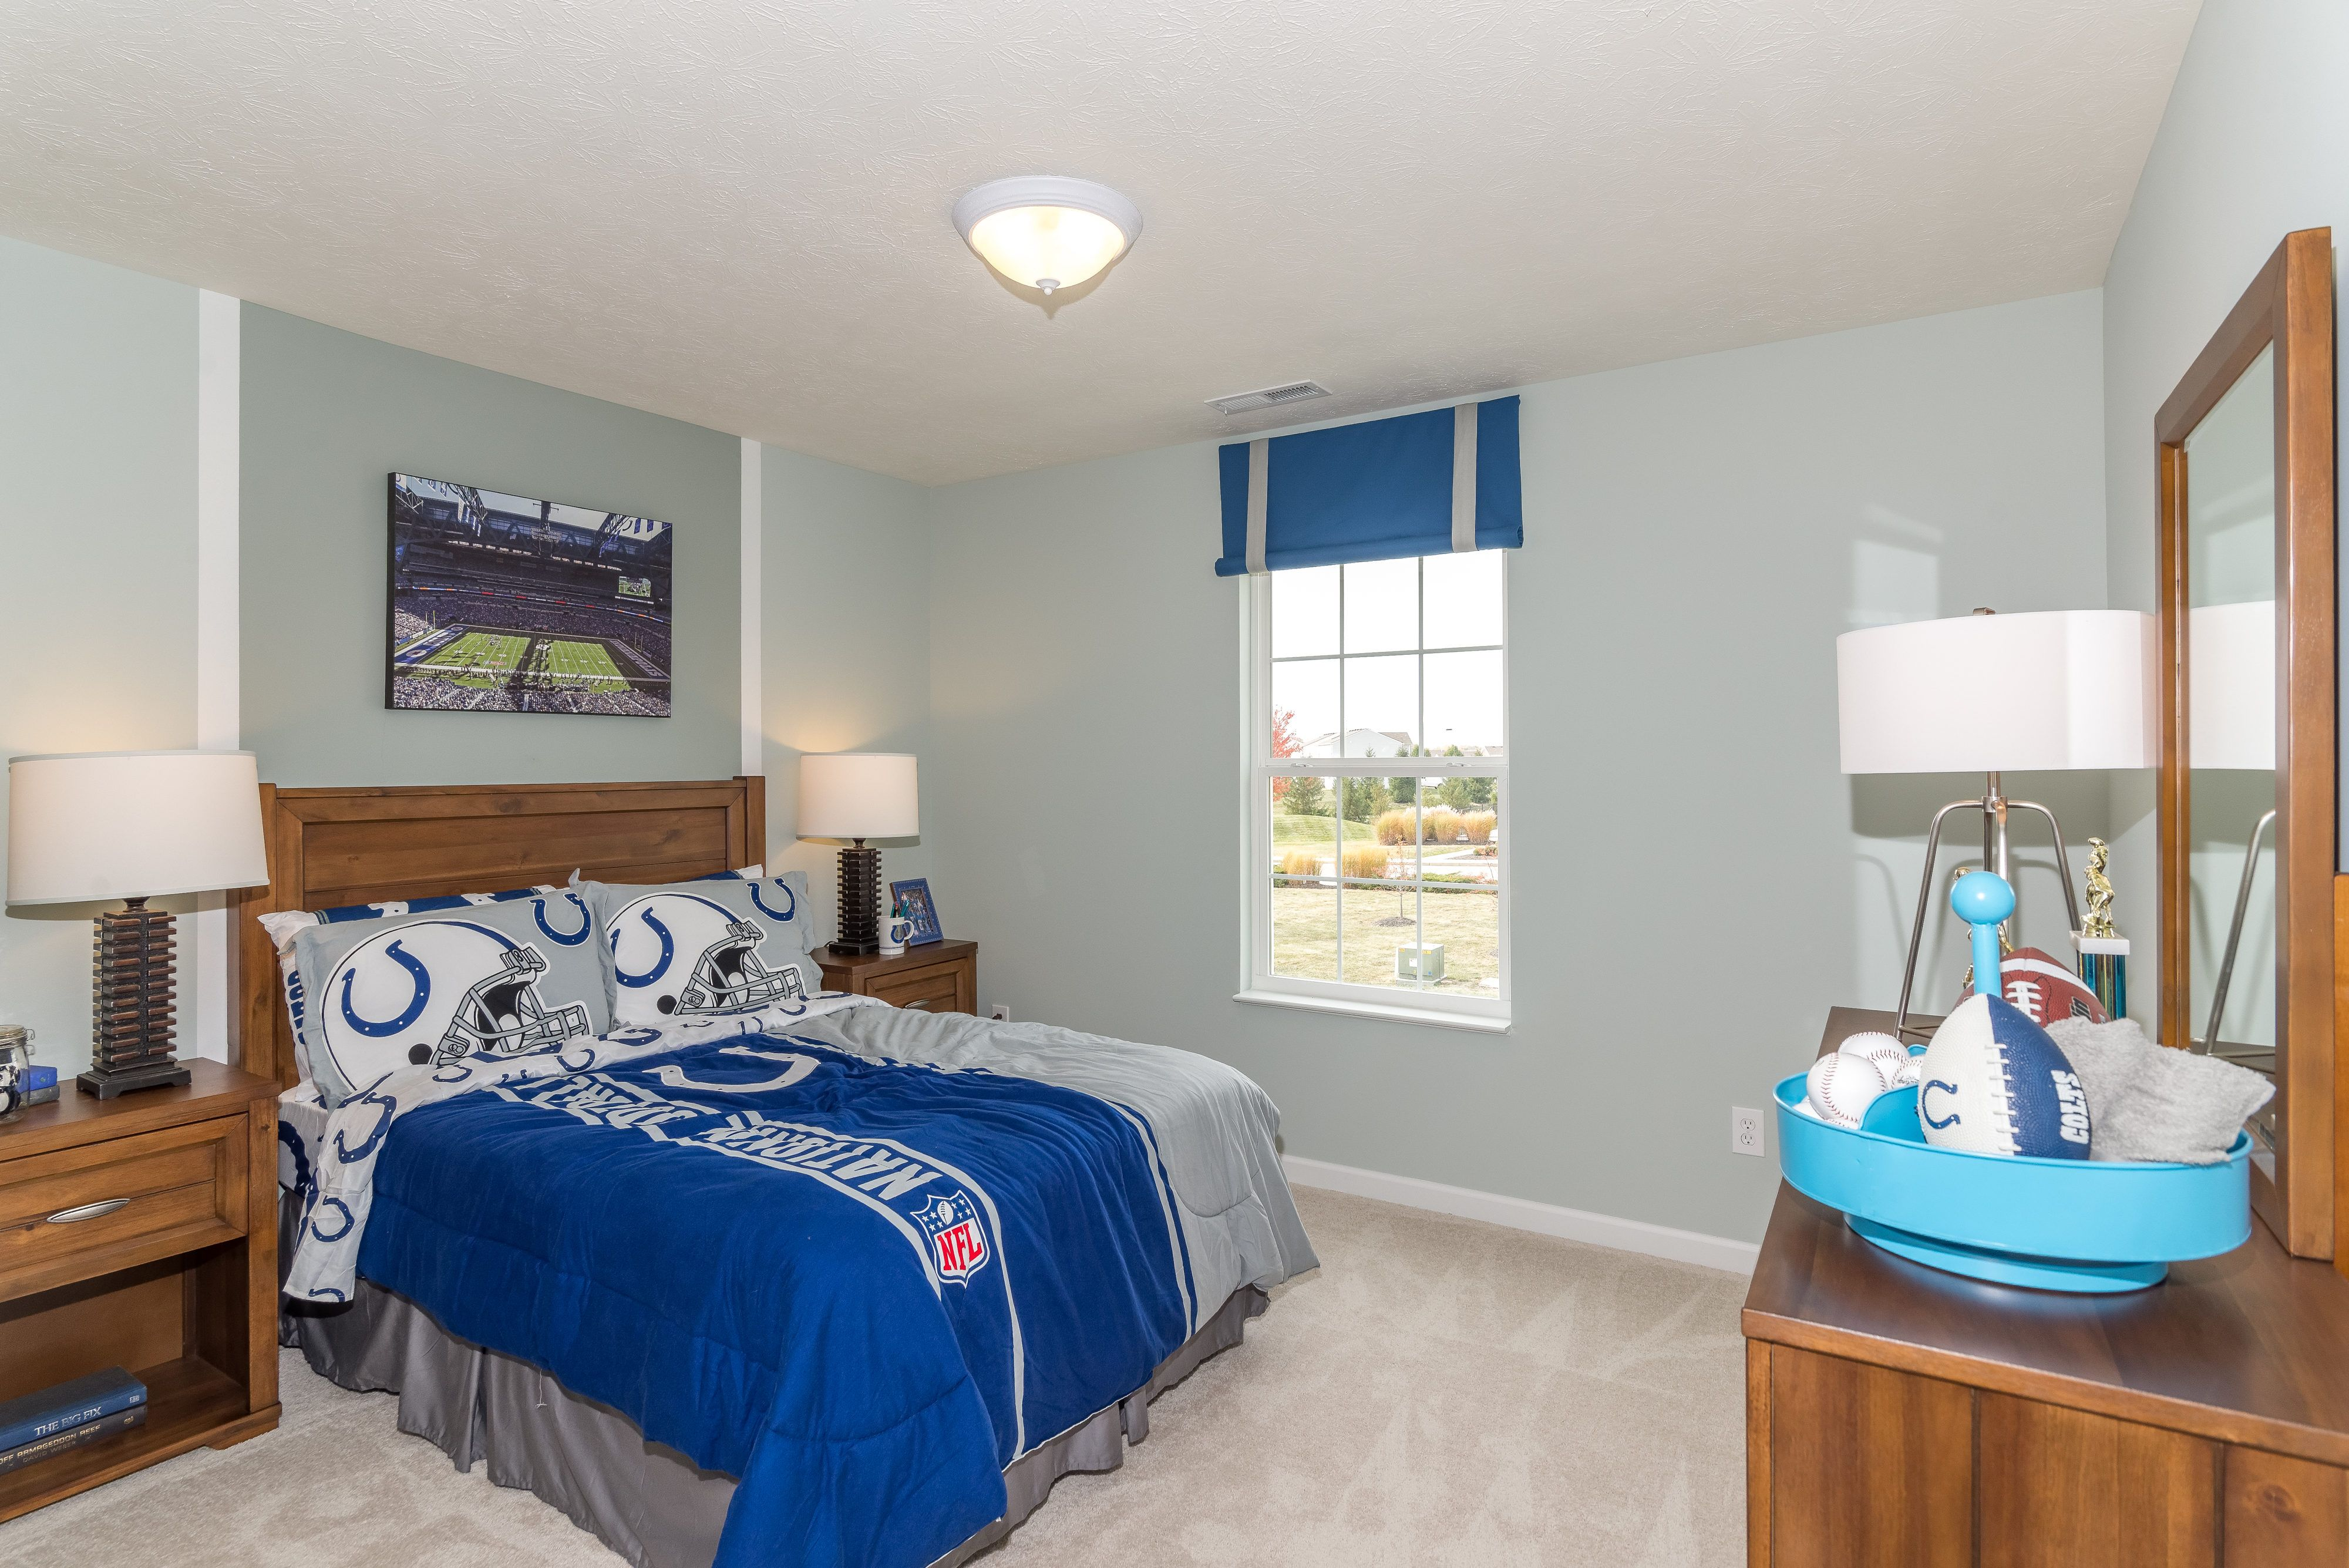 Colts Inspired Boys Bedroom Of The Spruce Home